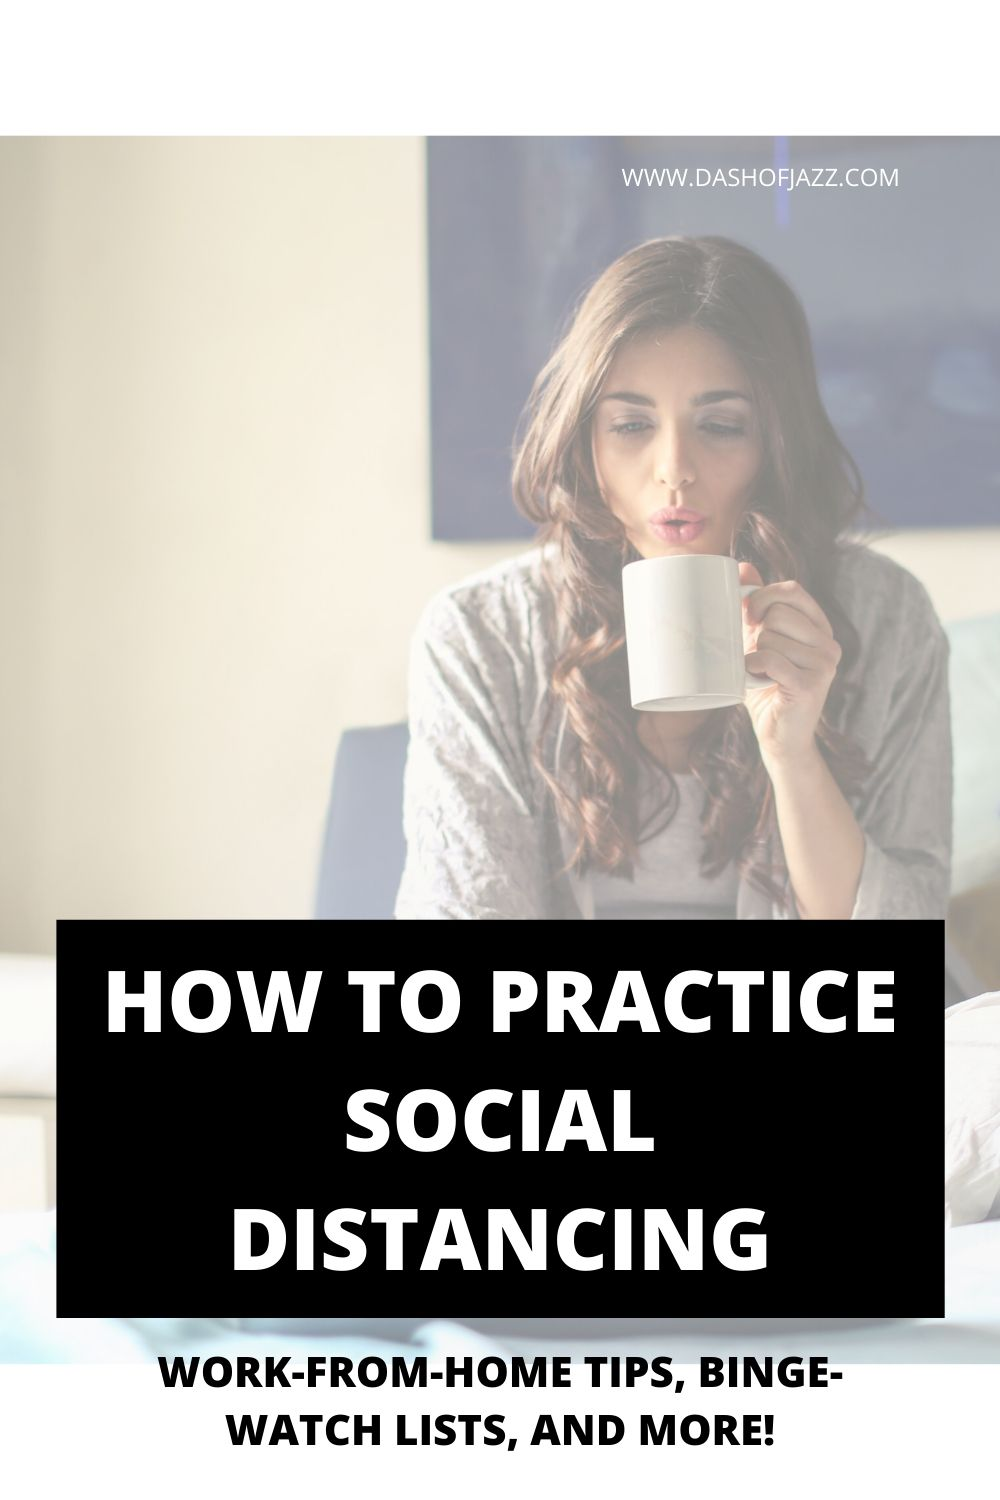 The Social Distancing Resources You Actually Need